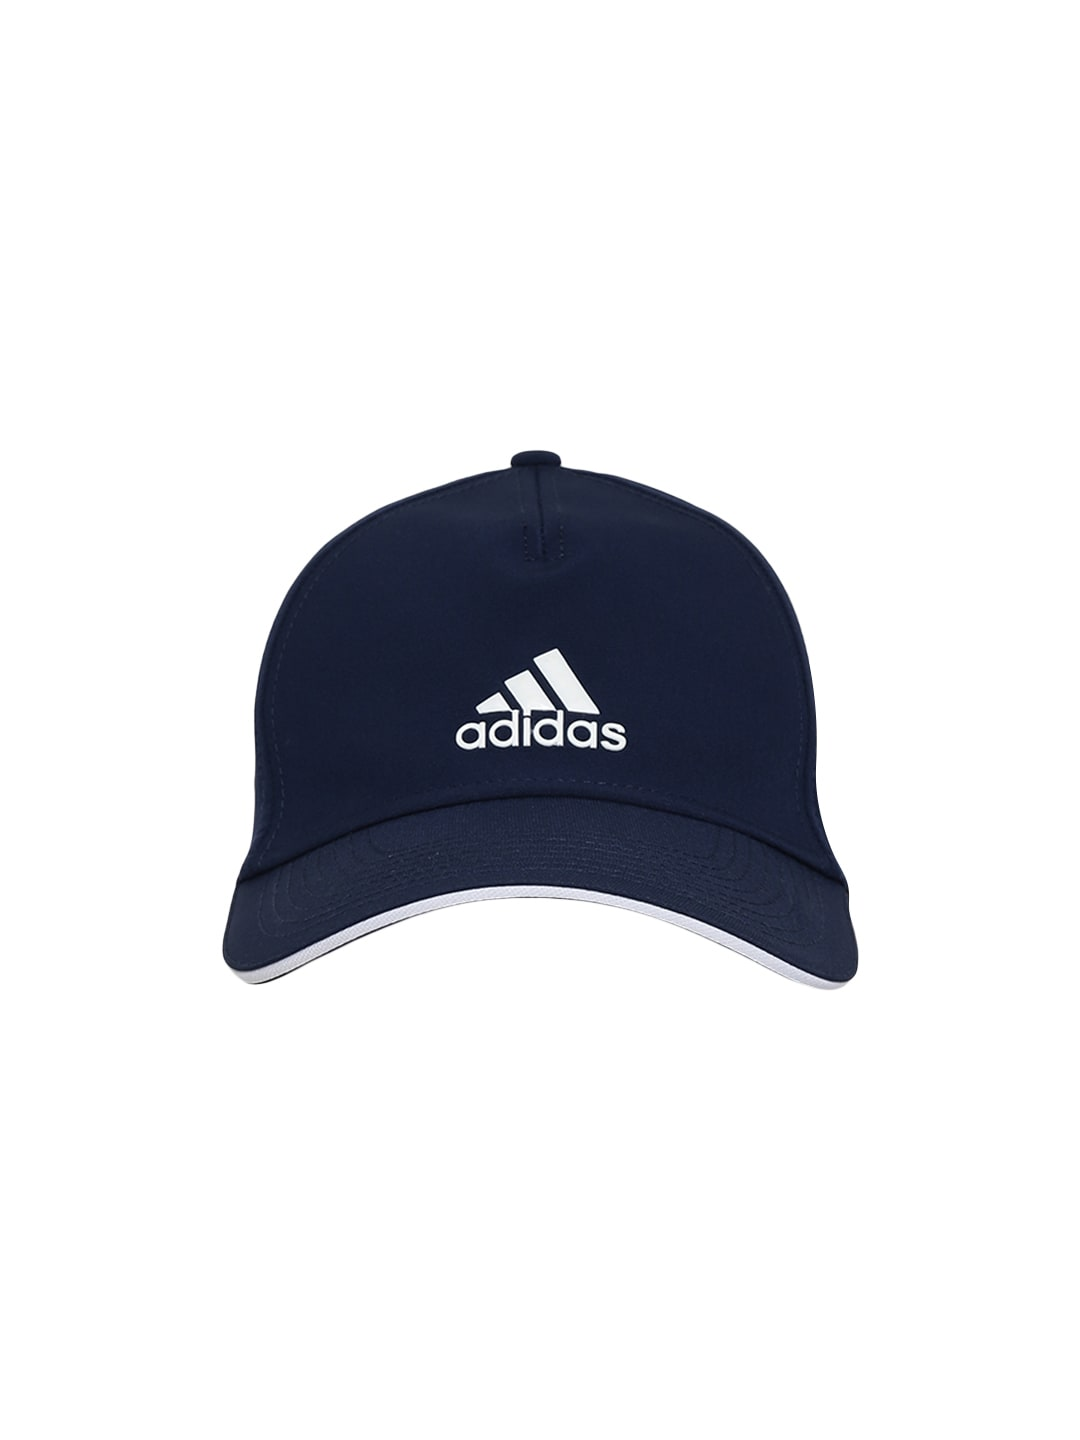 eb0a0639eb ADIDAS Men Navy Blue C40 5P Climalite Training Cap